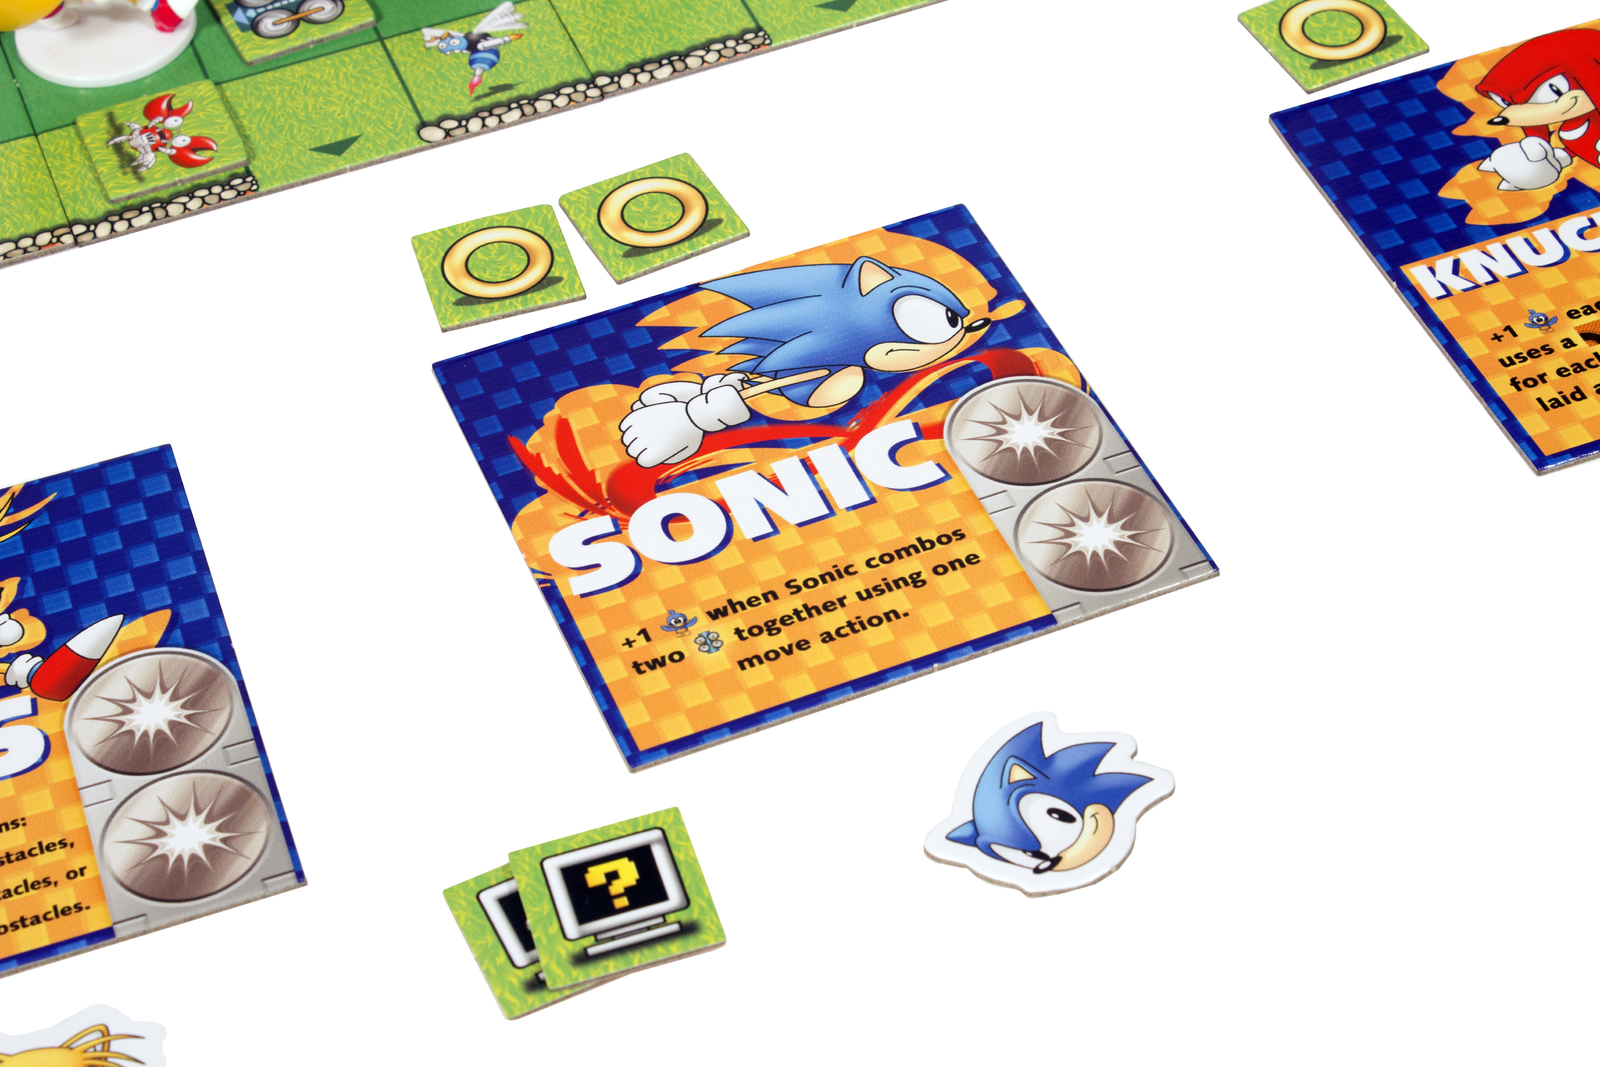 Sonic the Hedgehog - Crash Course image